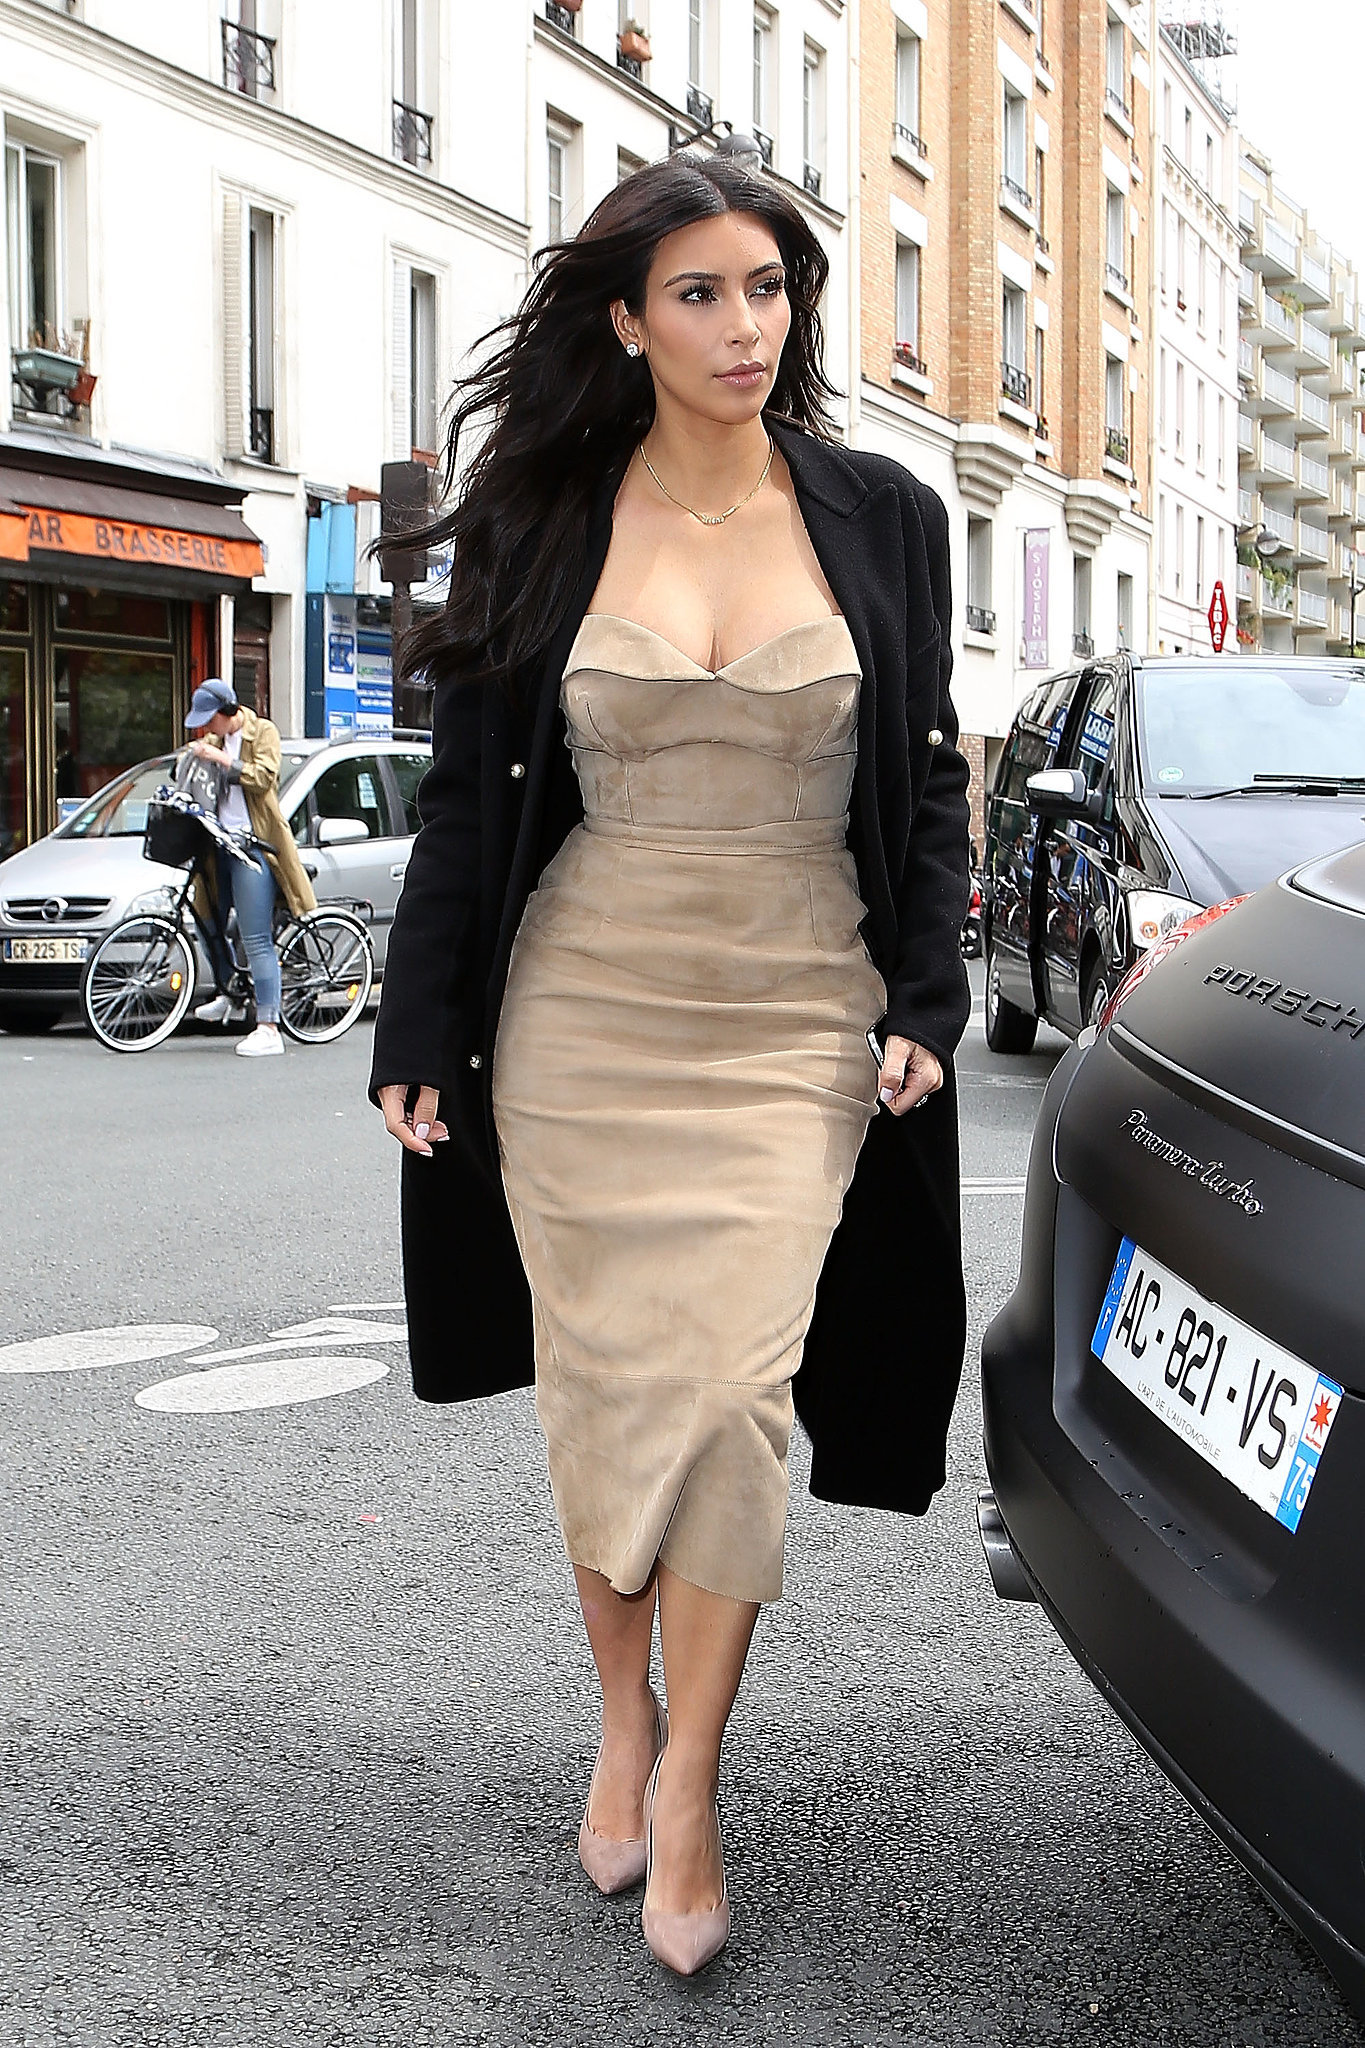 On May 21, Kim topped off a suede strapless dress with an overcoat